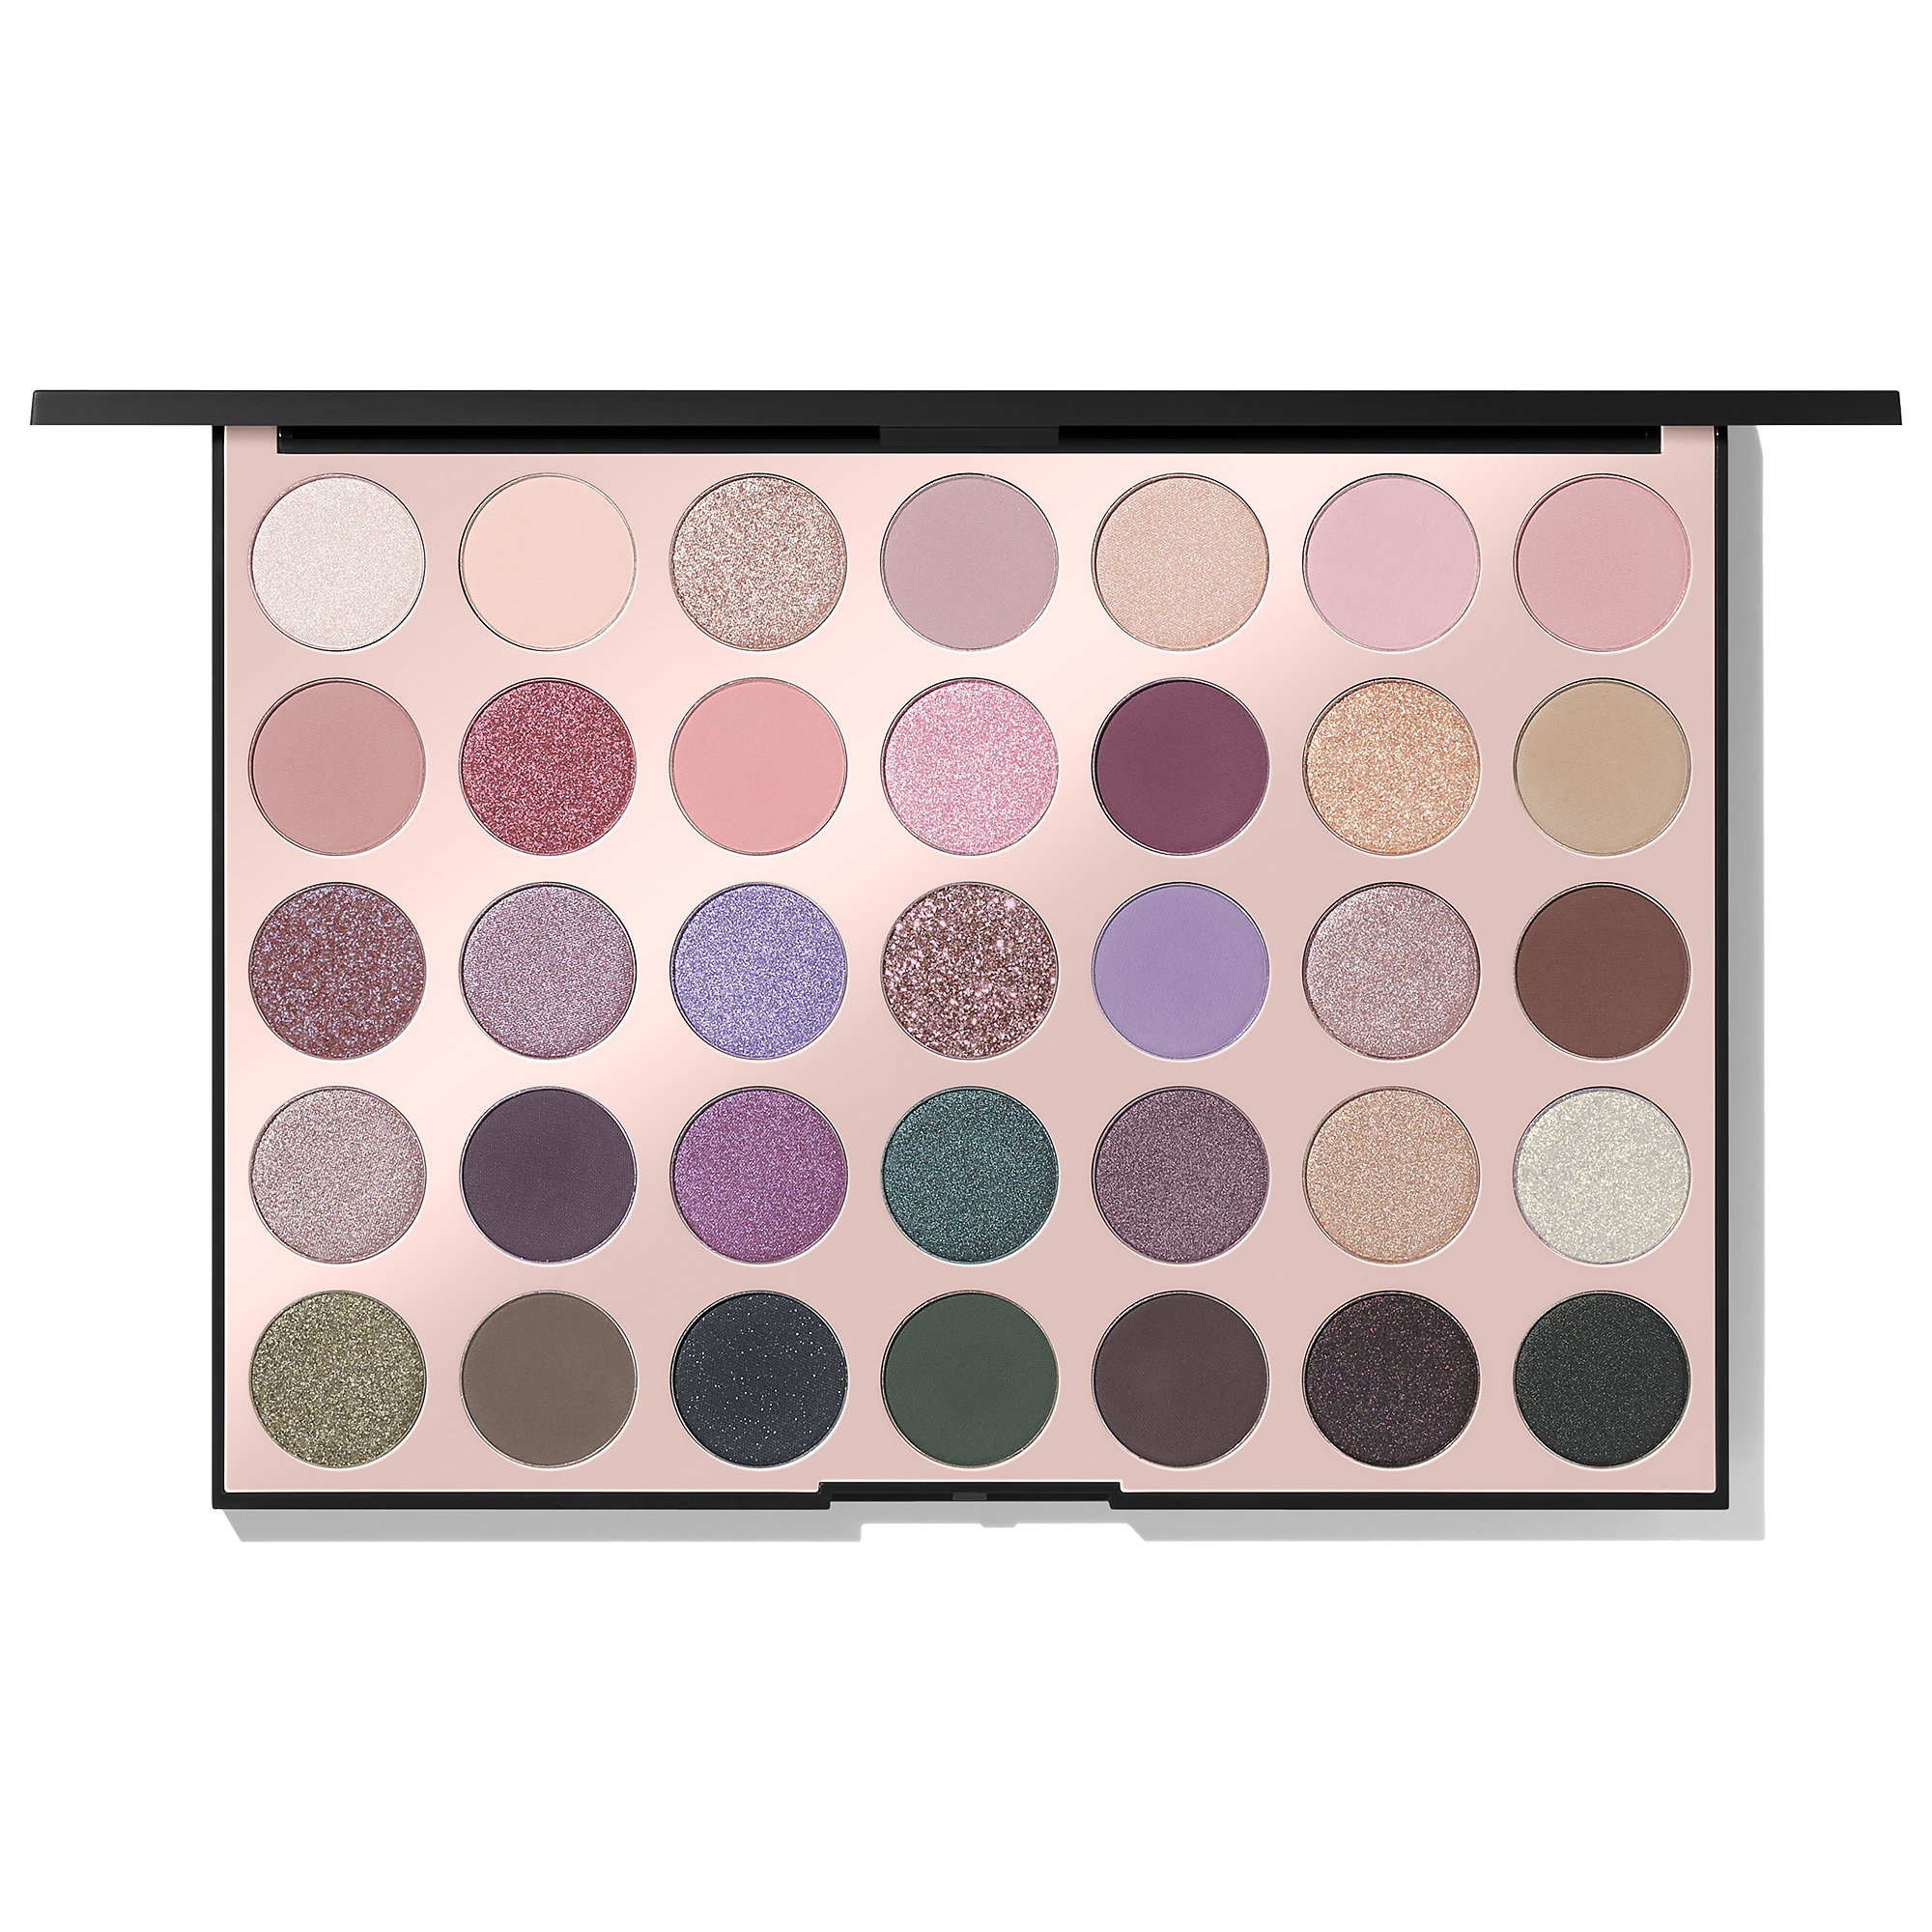 Morphe - 35C Everyday Chic Artistry Palette